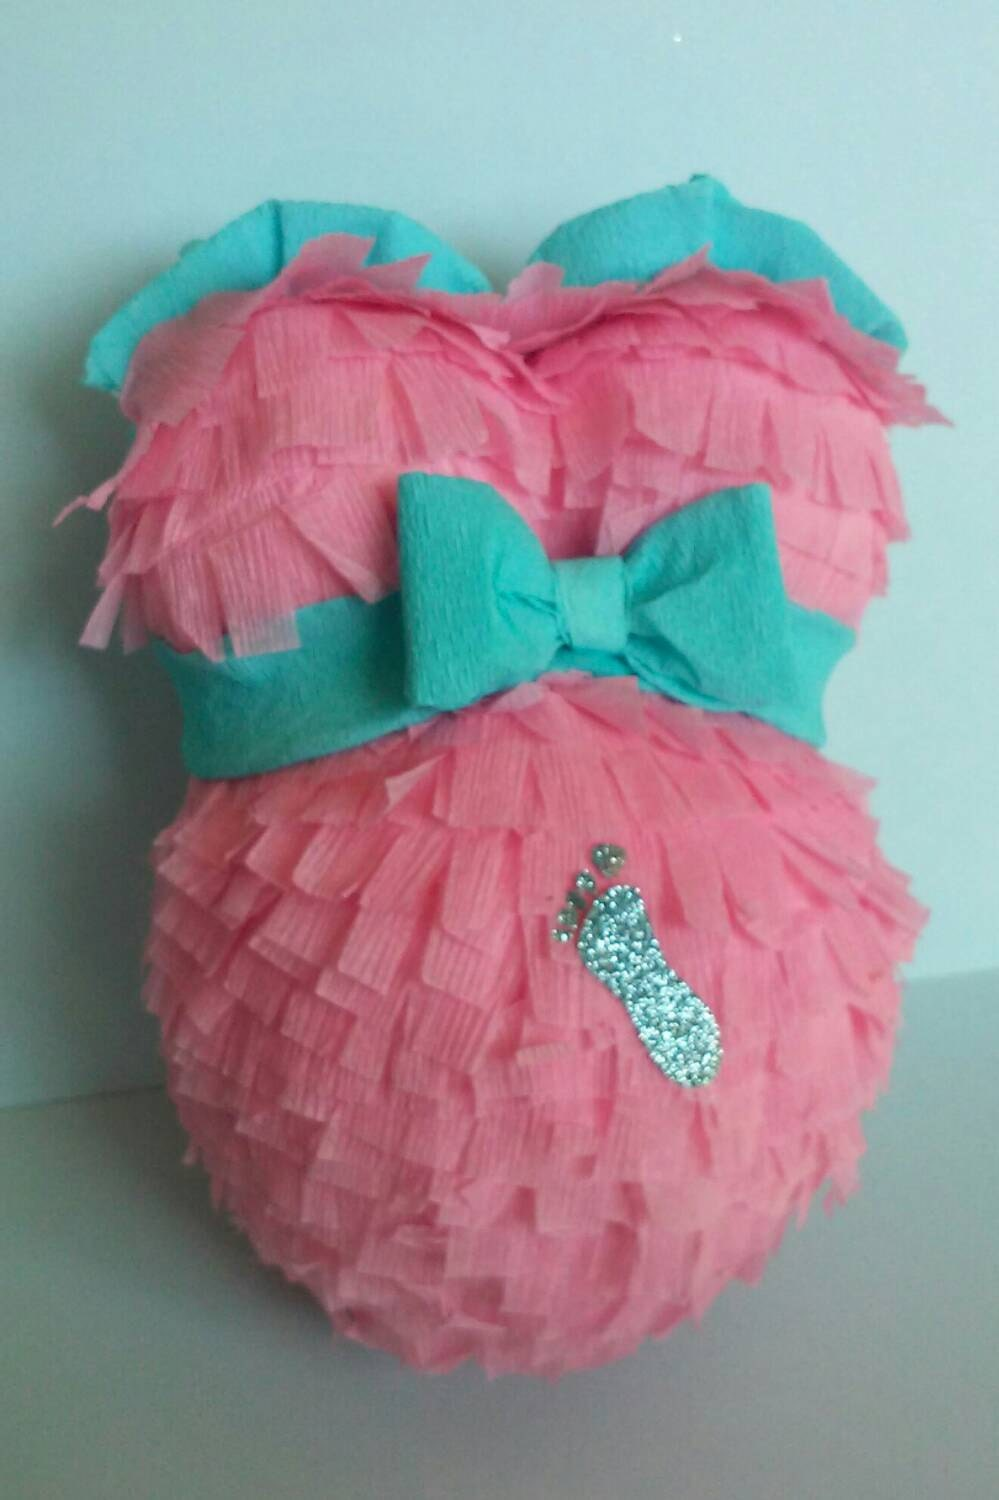 cute pregnant belly pinata for baby shower gender reveal